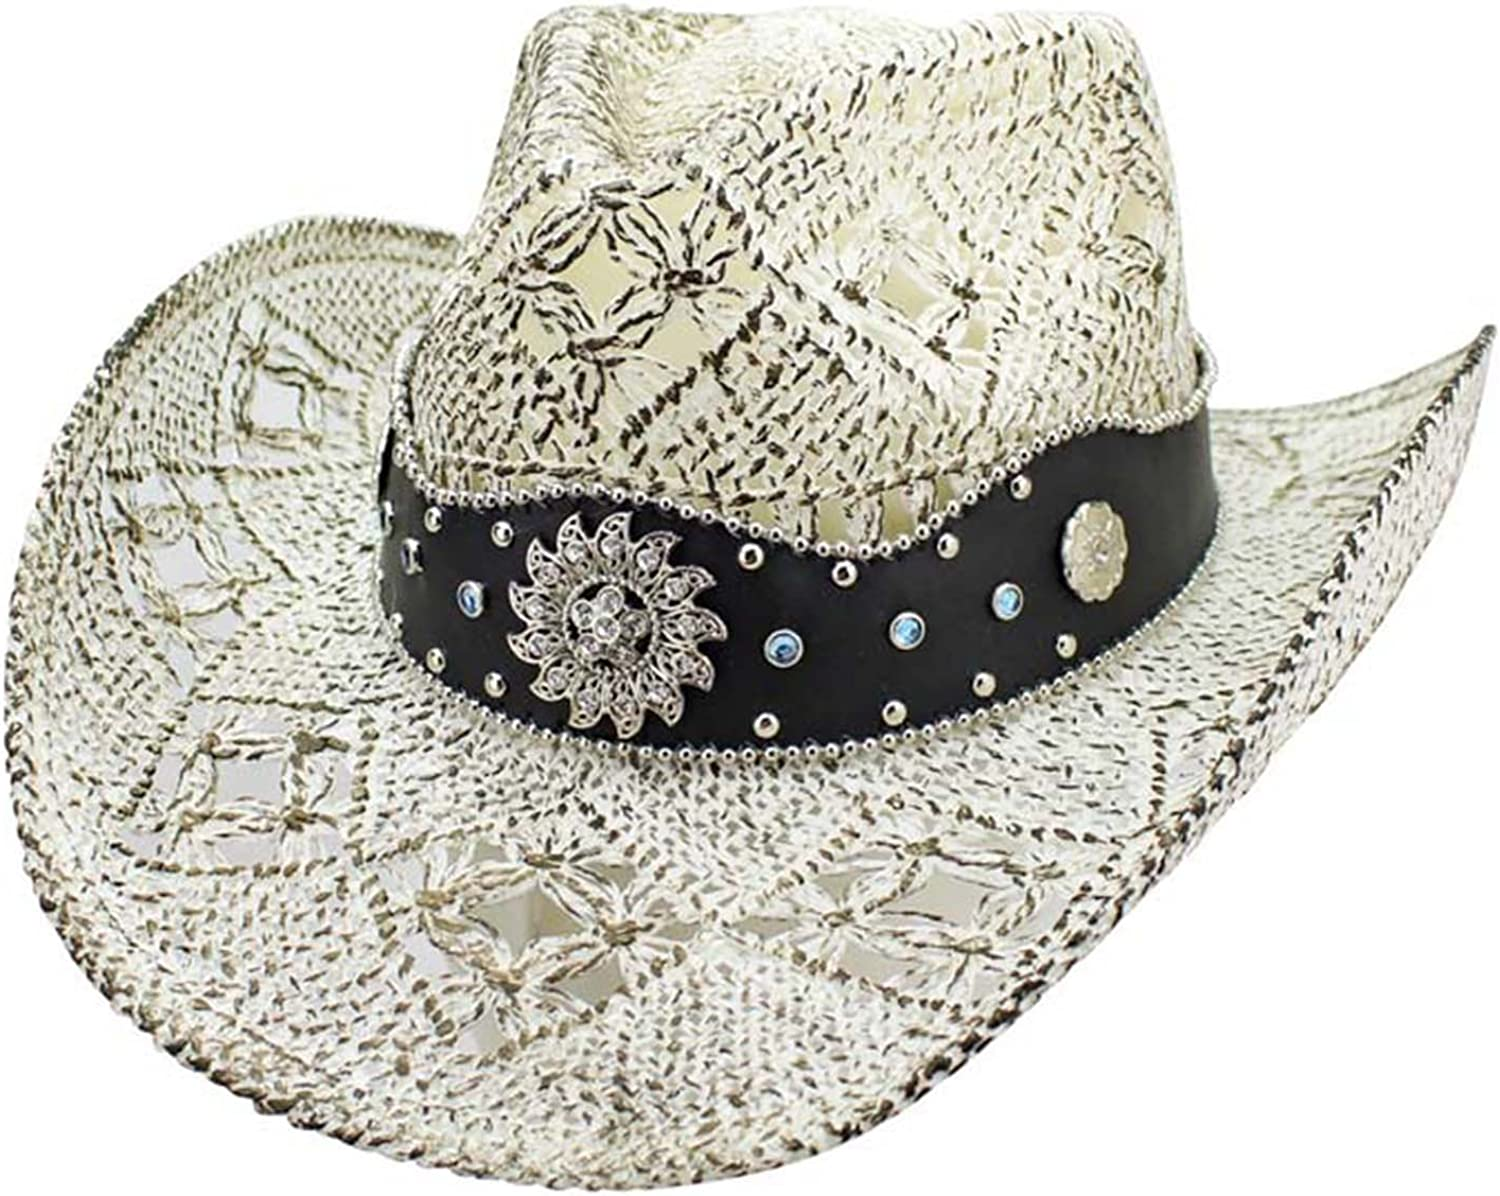 Luxury Divas White Antiqued Straw Cowboy Hat with Jeweled Band